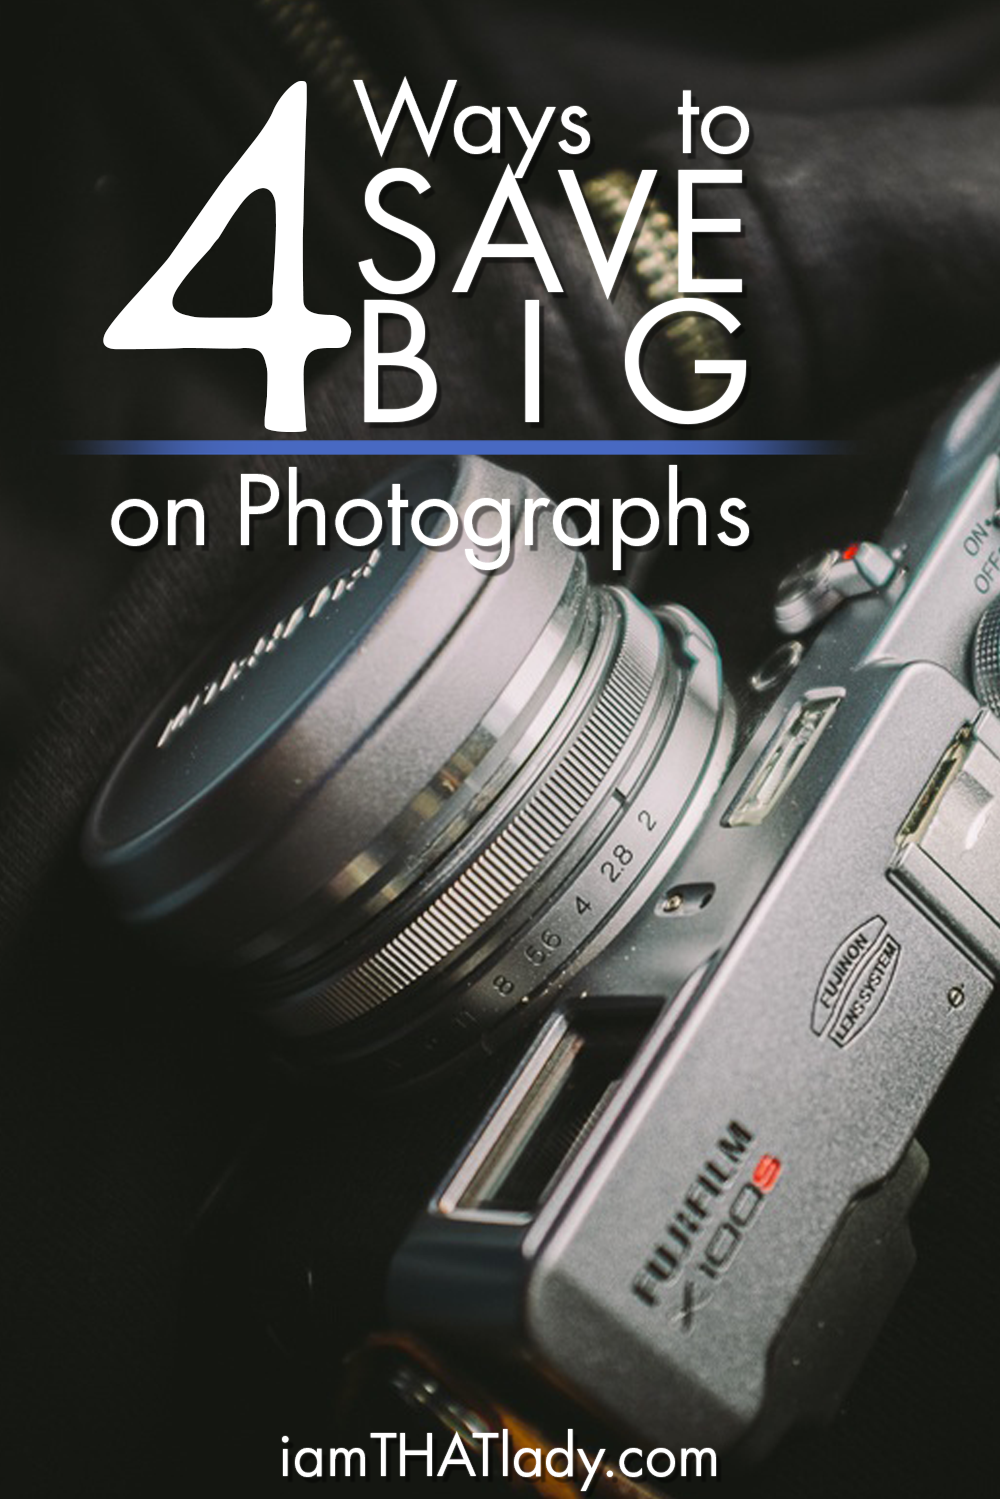 Need Awesome photos on a budget? Then check out these 4 Ways to SAVE BIG on Photographs!